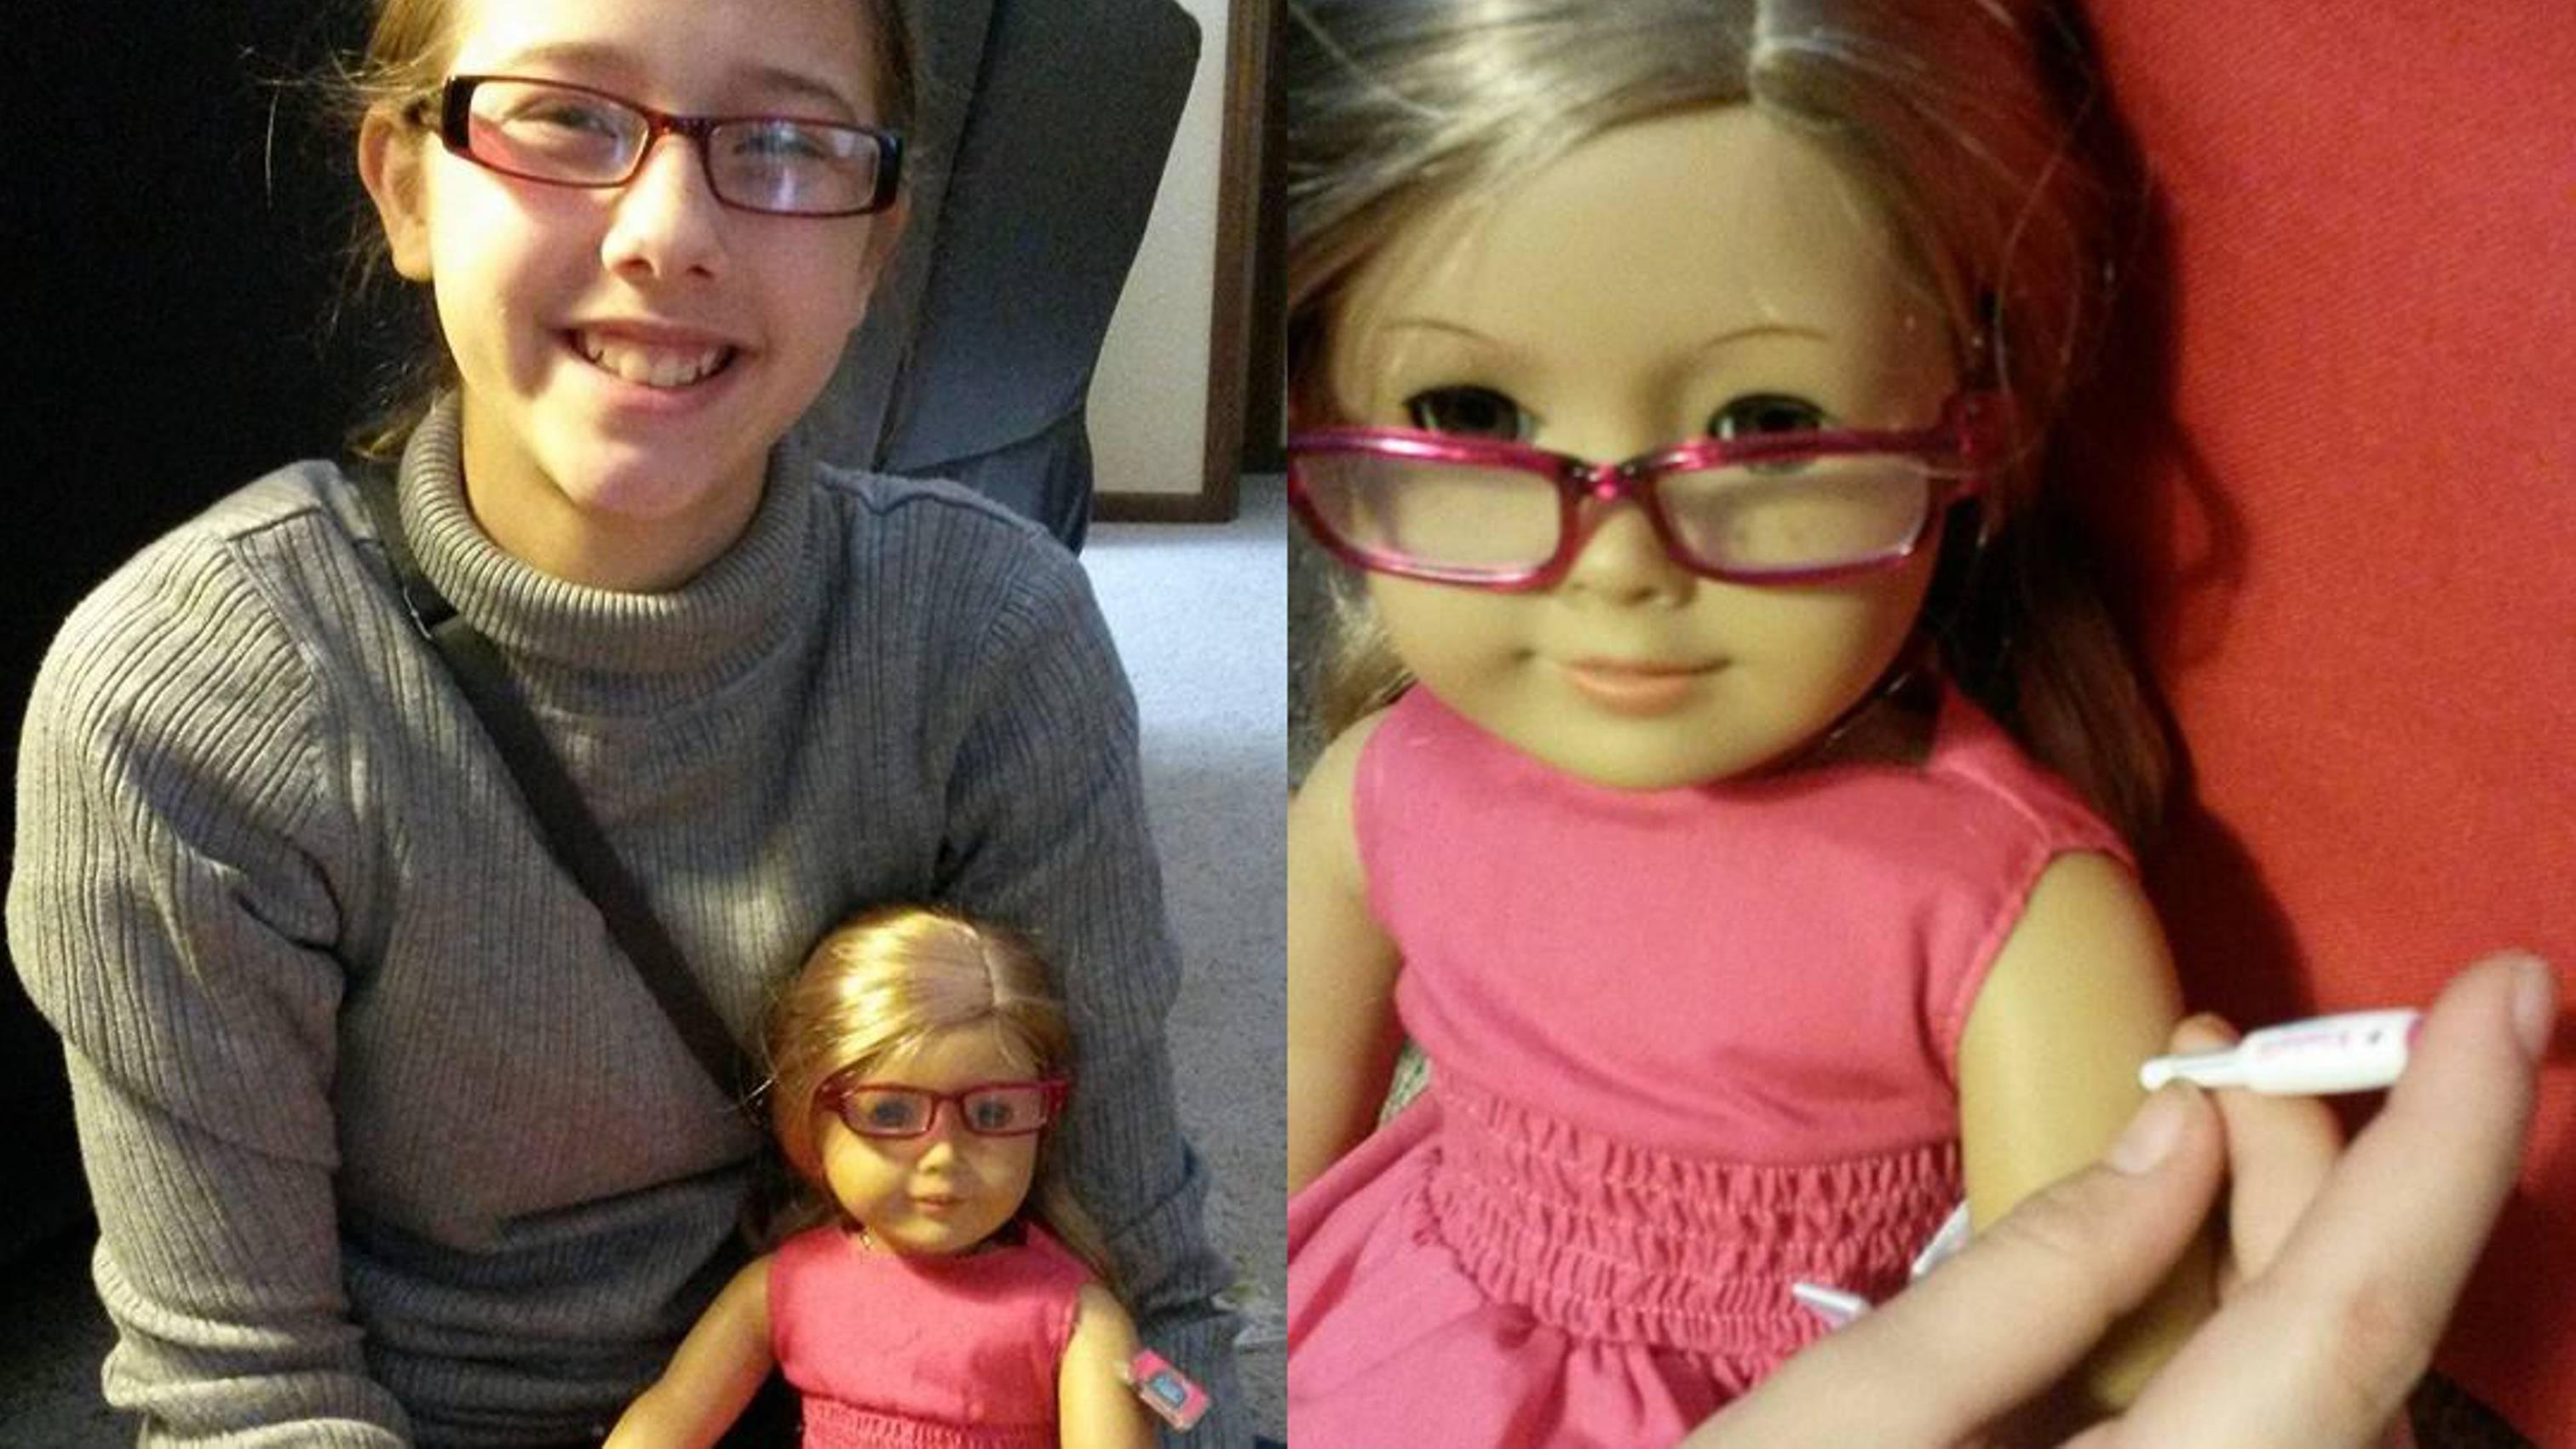 American Girl's New Diabetes Kit Is Making Real Girls' Dreams Come True